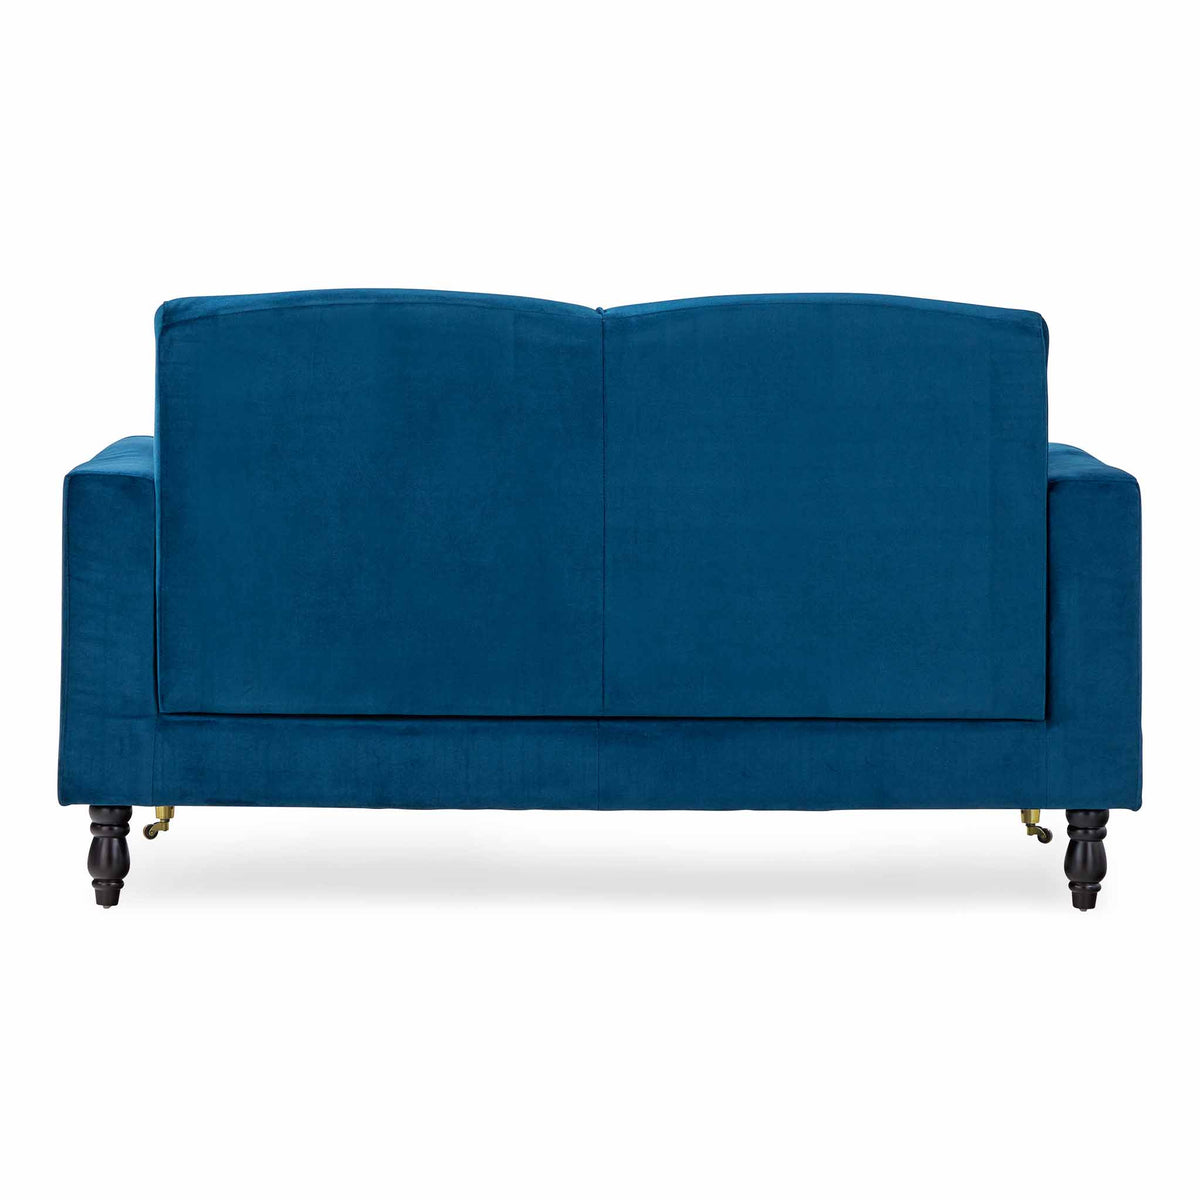 back view of the Piper Peacock 2 Seater Sofa from Roseland Furniture